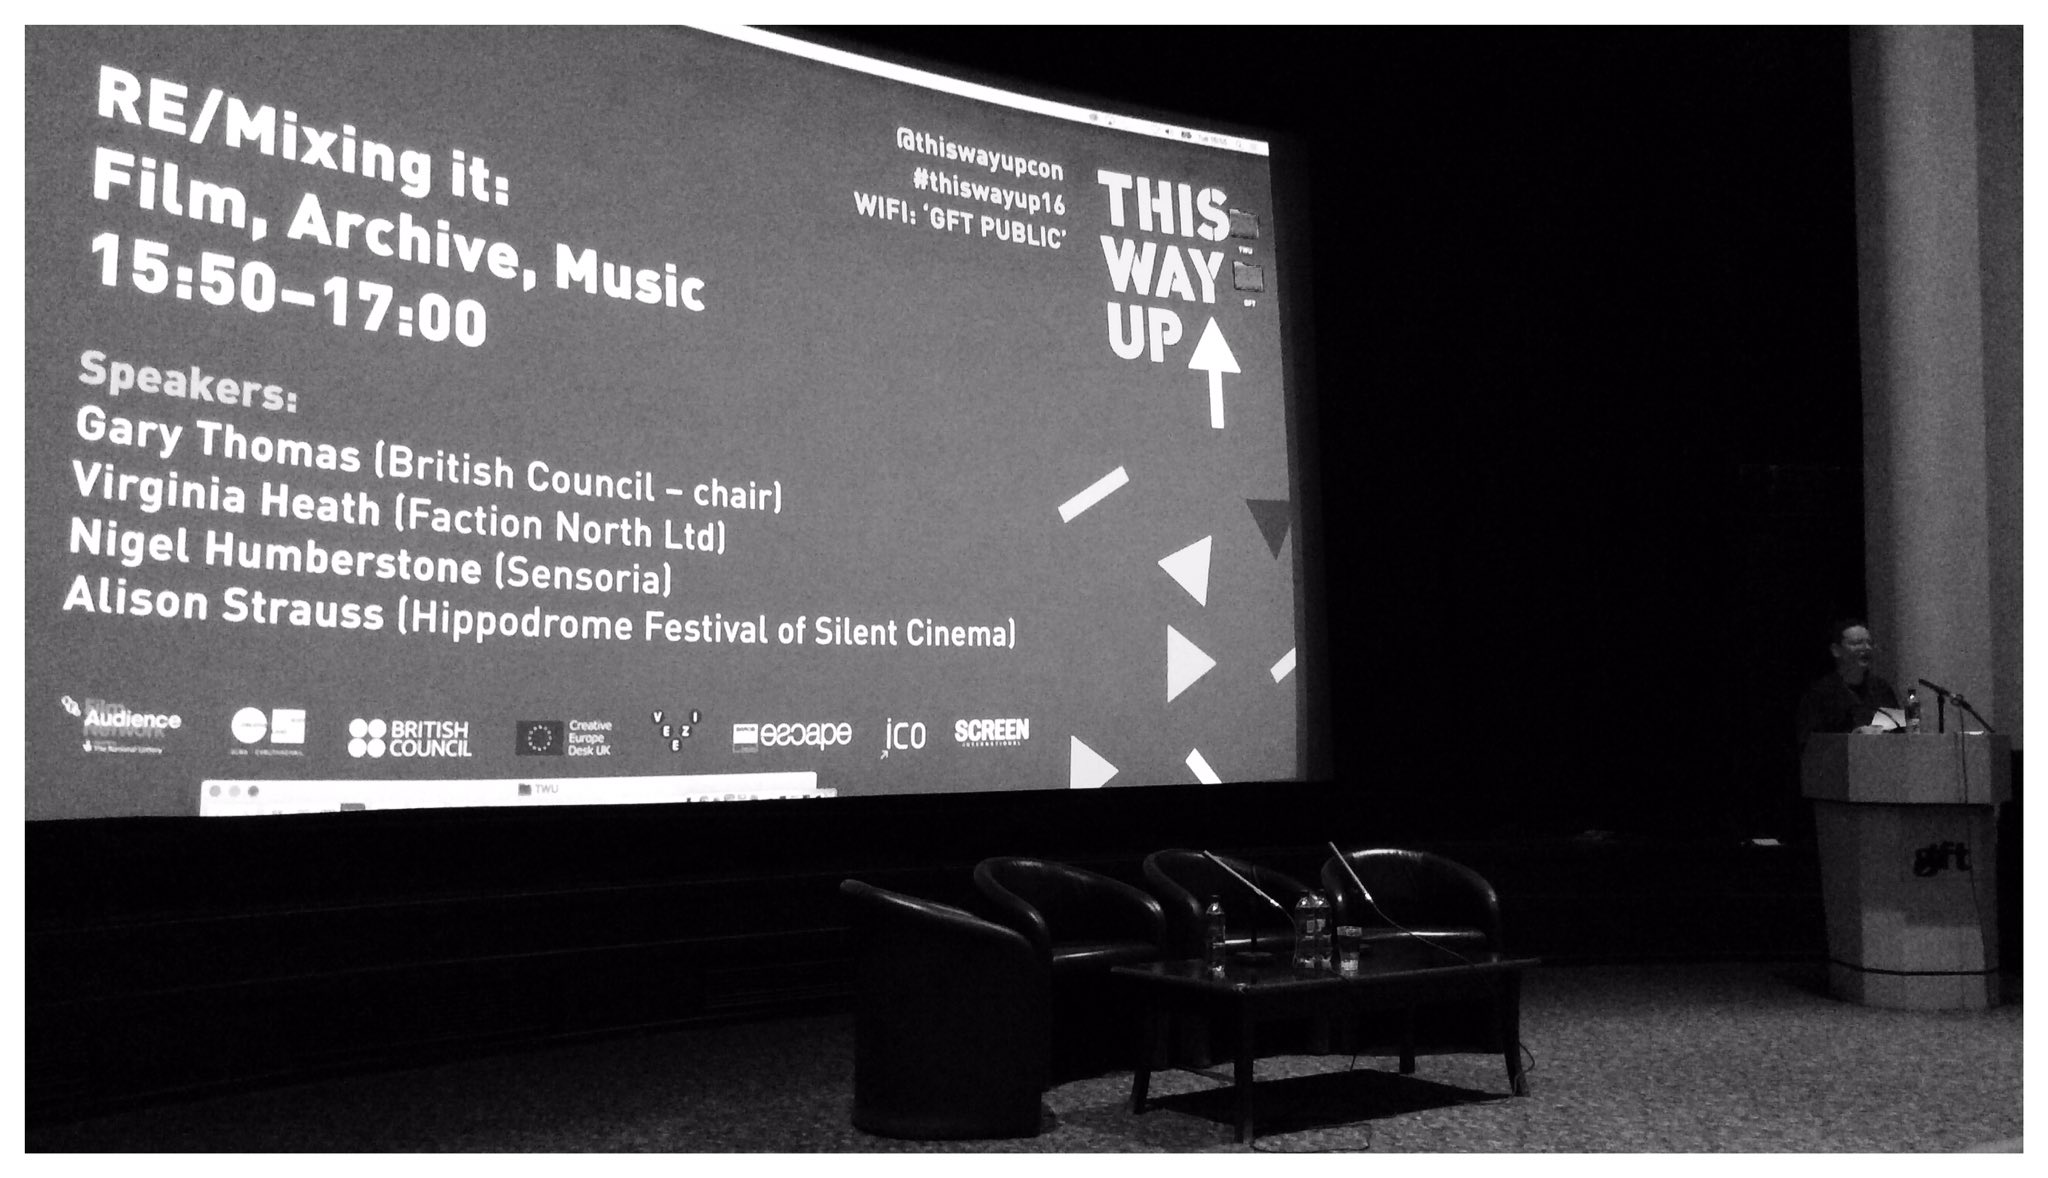 Collaborations between musicians and filmmakers chaired by Gary Thomas of the British Council #ThisWayUp16 https://t.co/zxlVdXfwWB